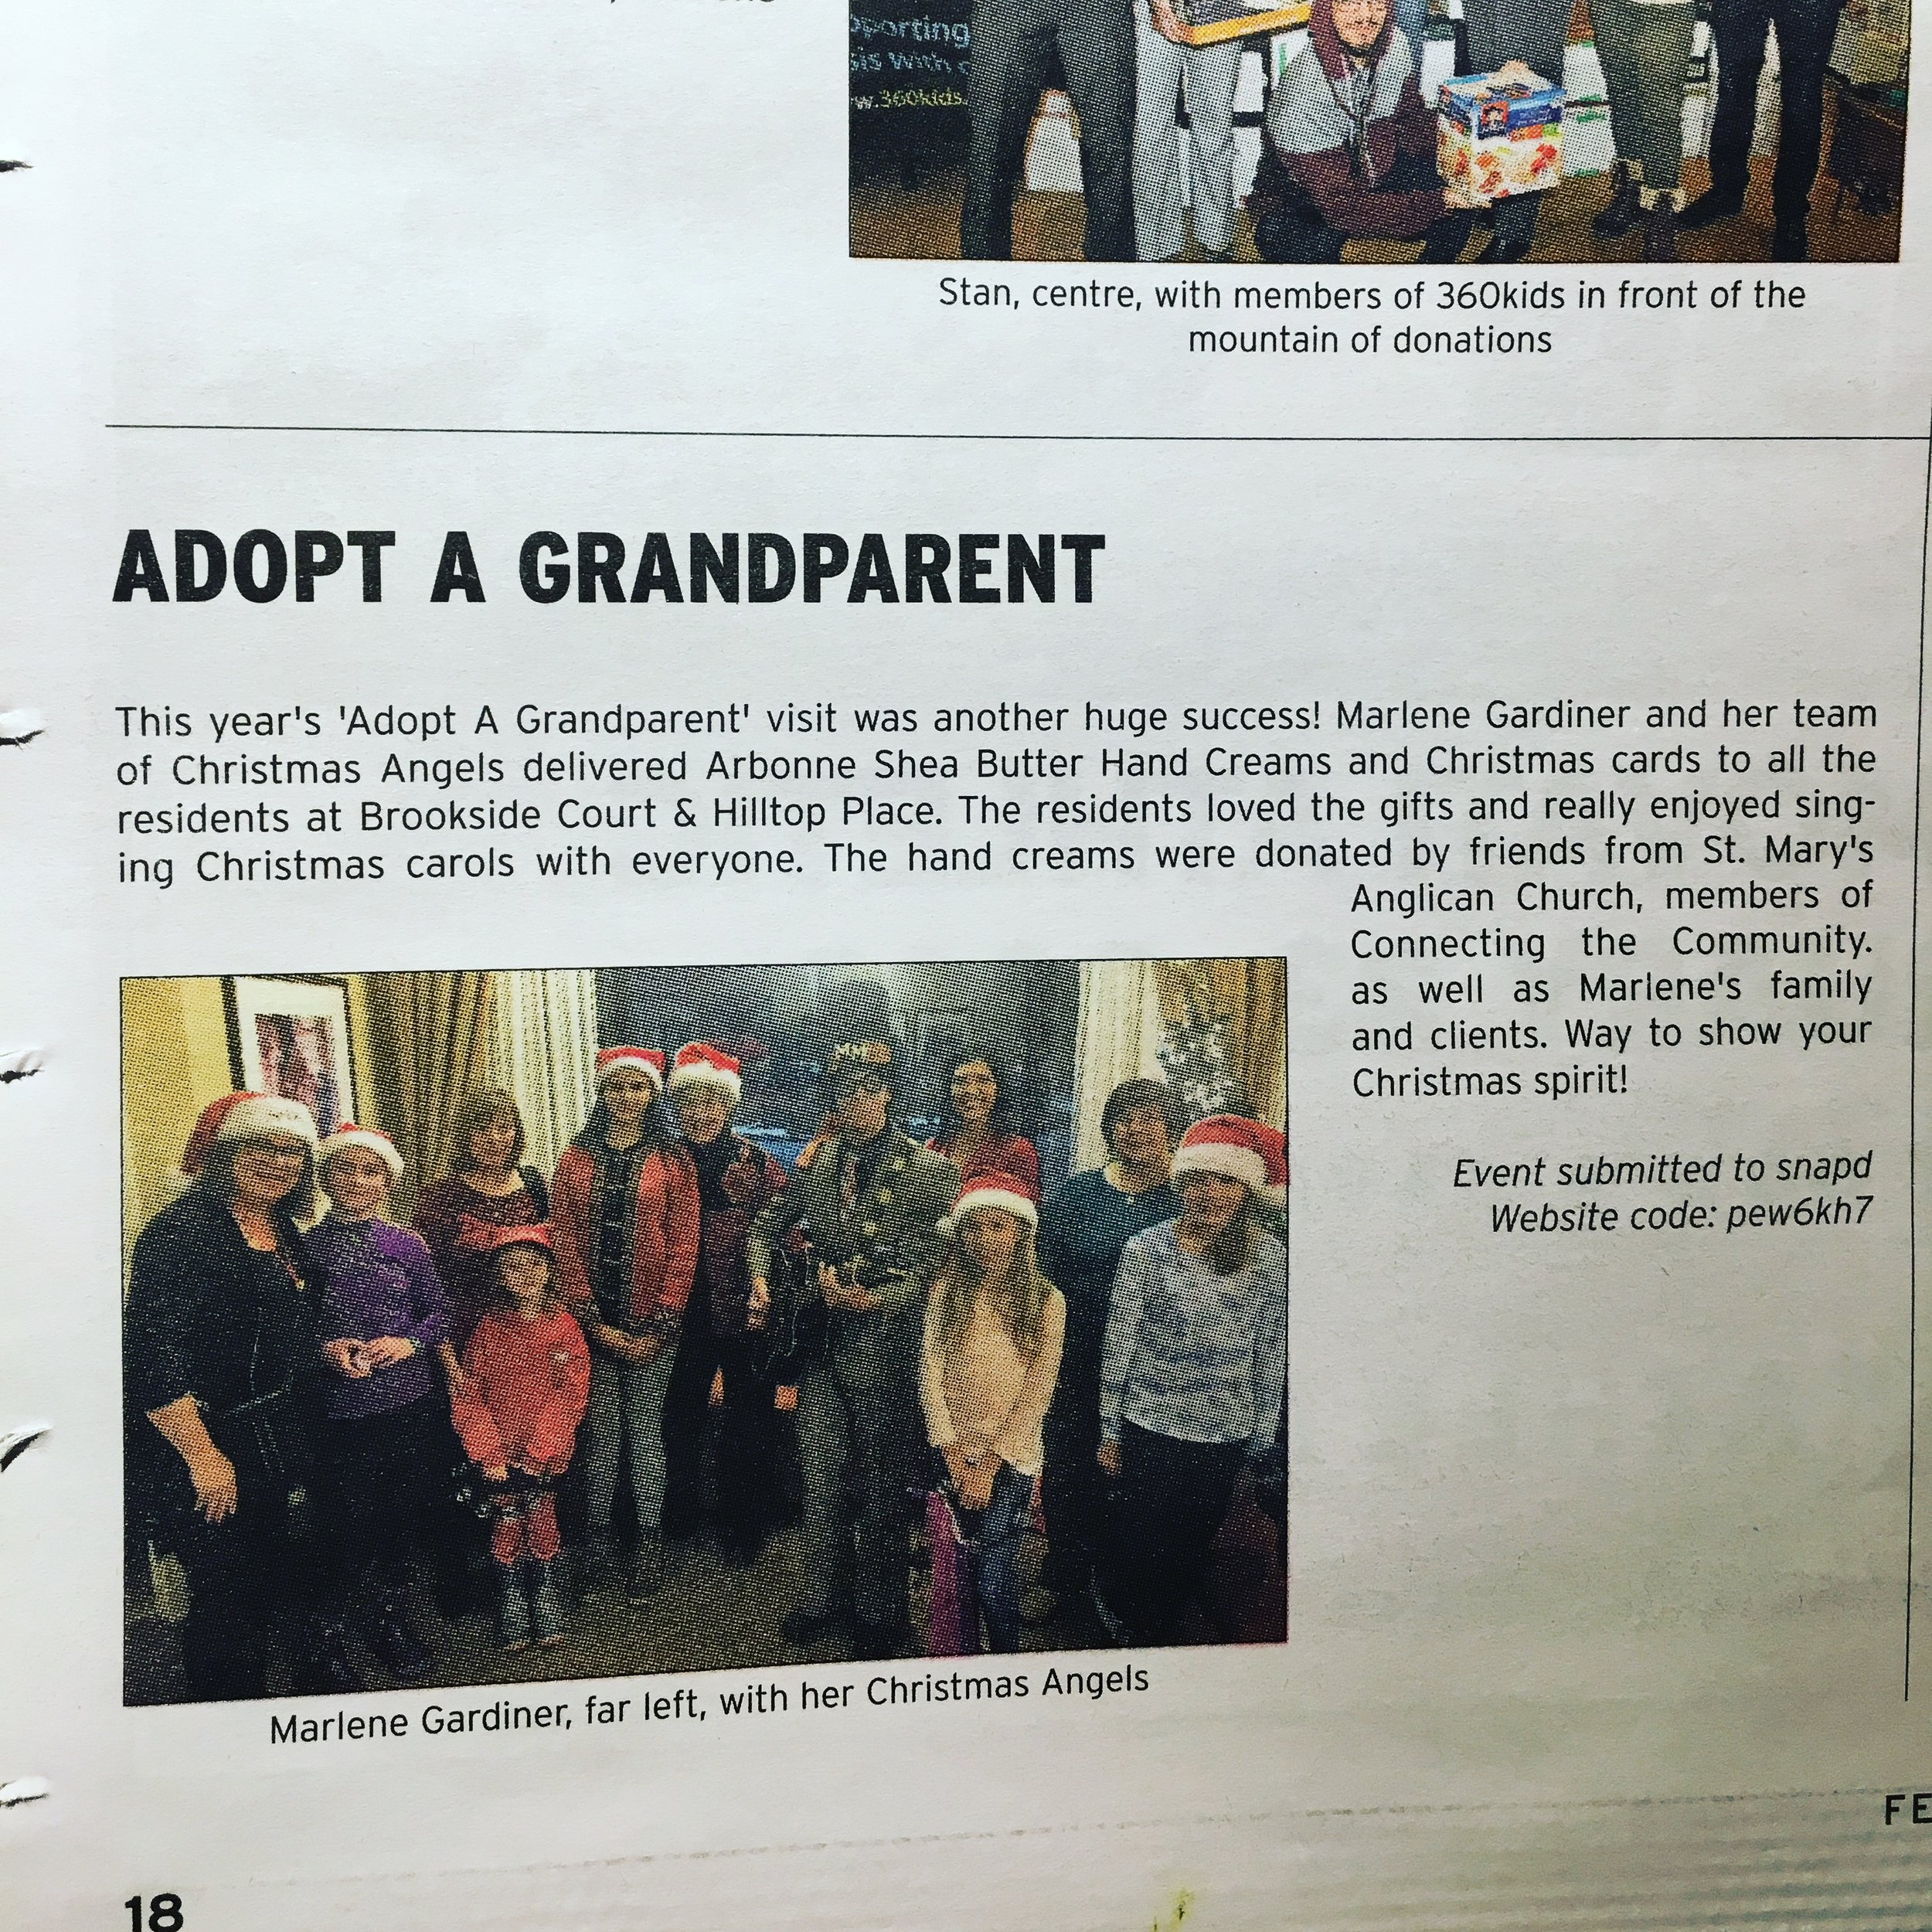 Marky Monday sings Christmas songs at Seniors home for 'Adopt A Grandparent' - SNAPD Richmond Hill FEB 2017.